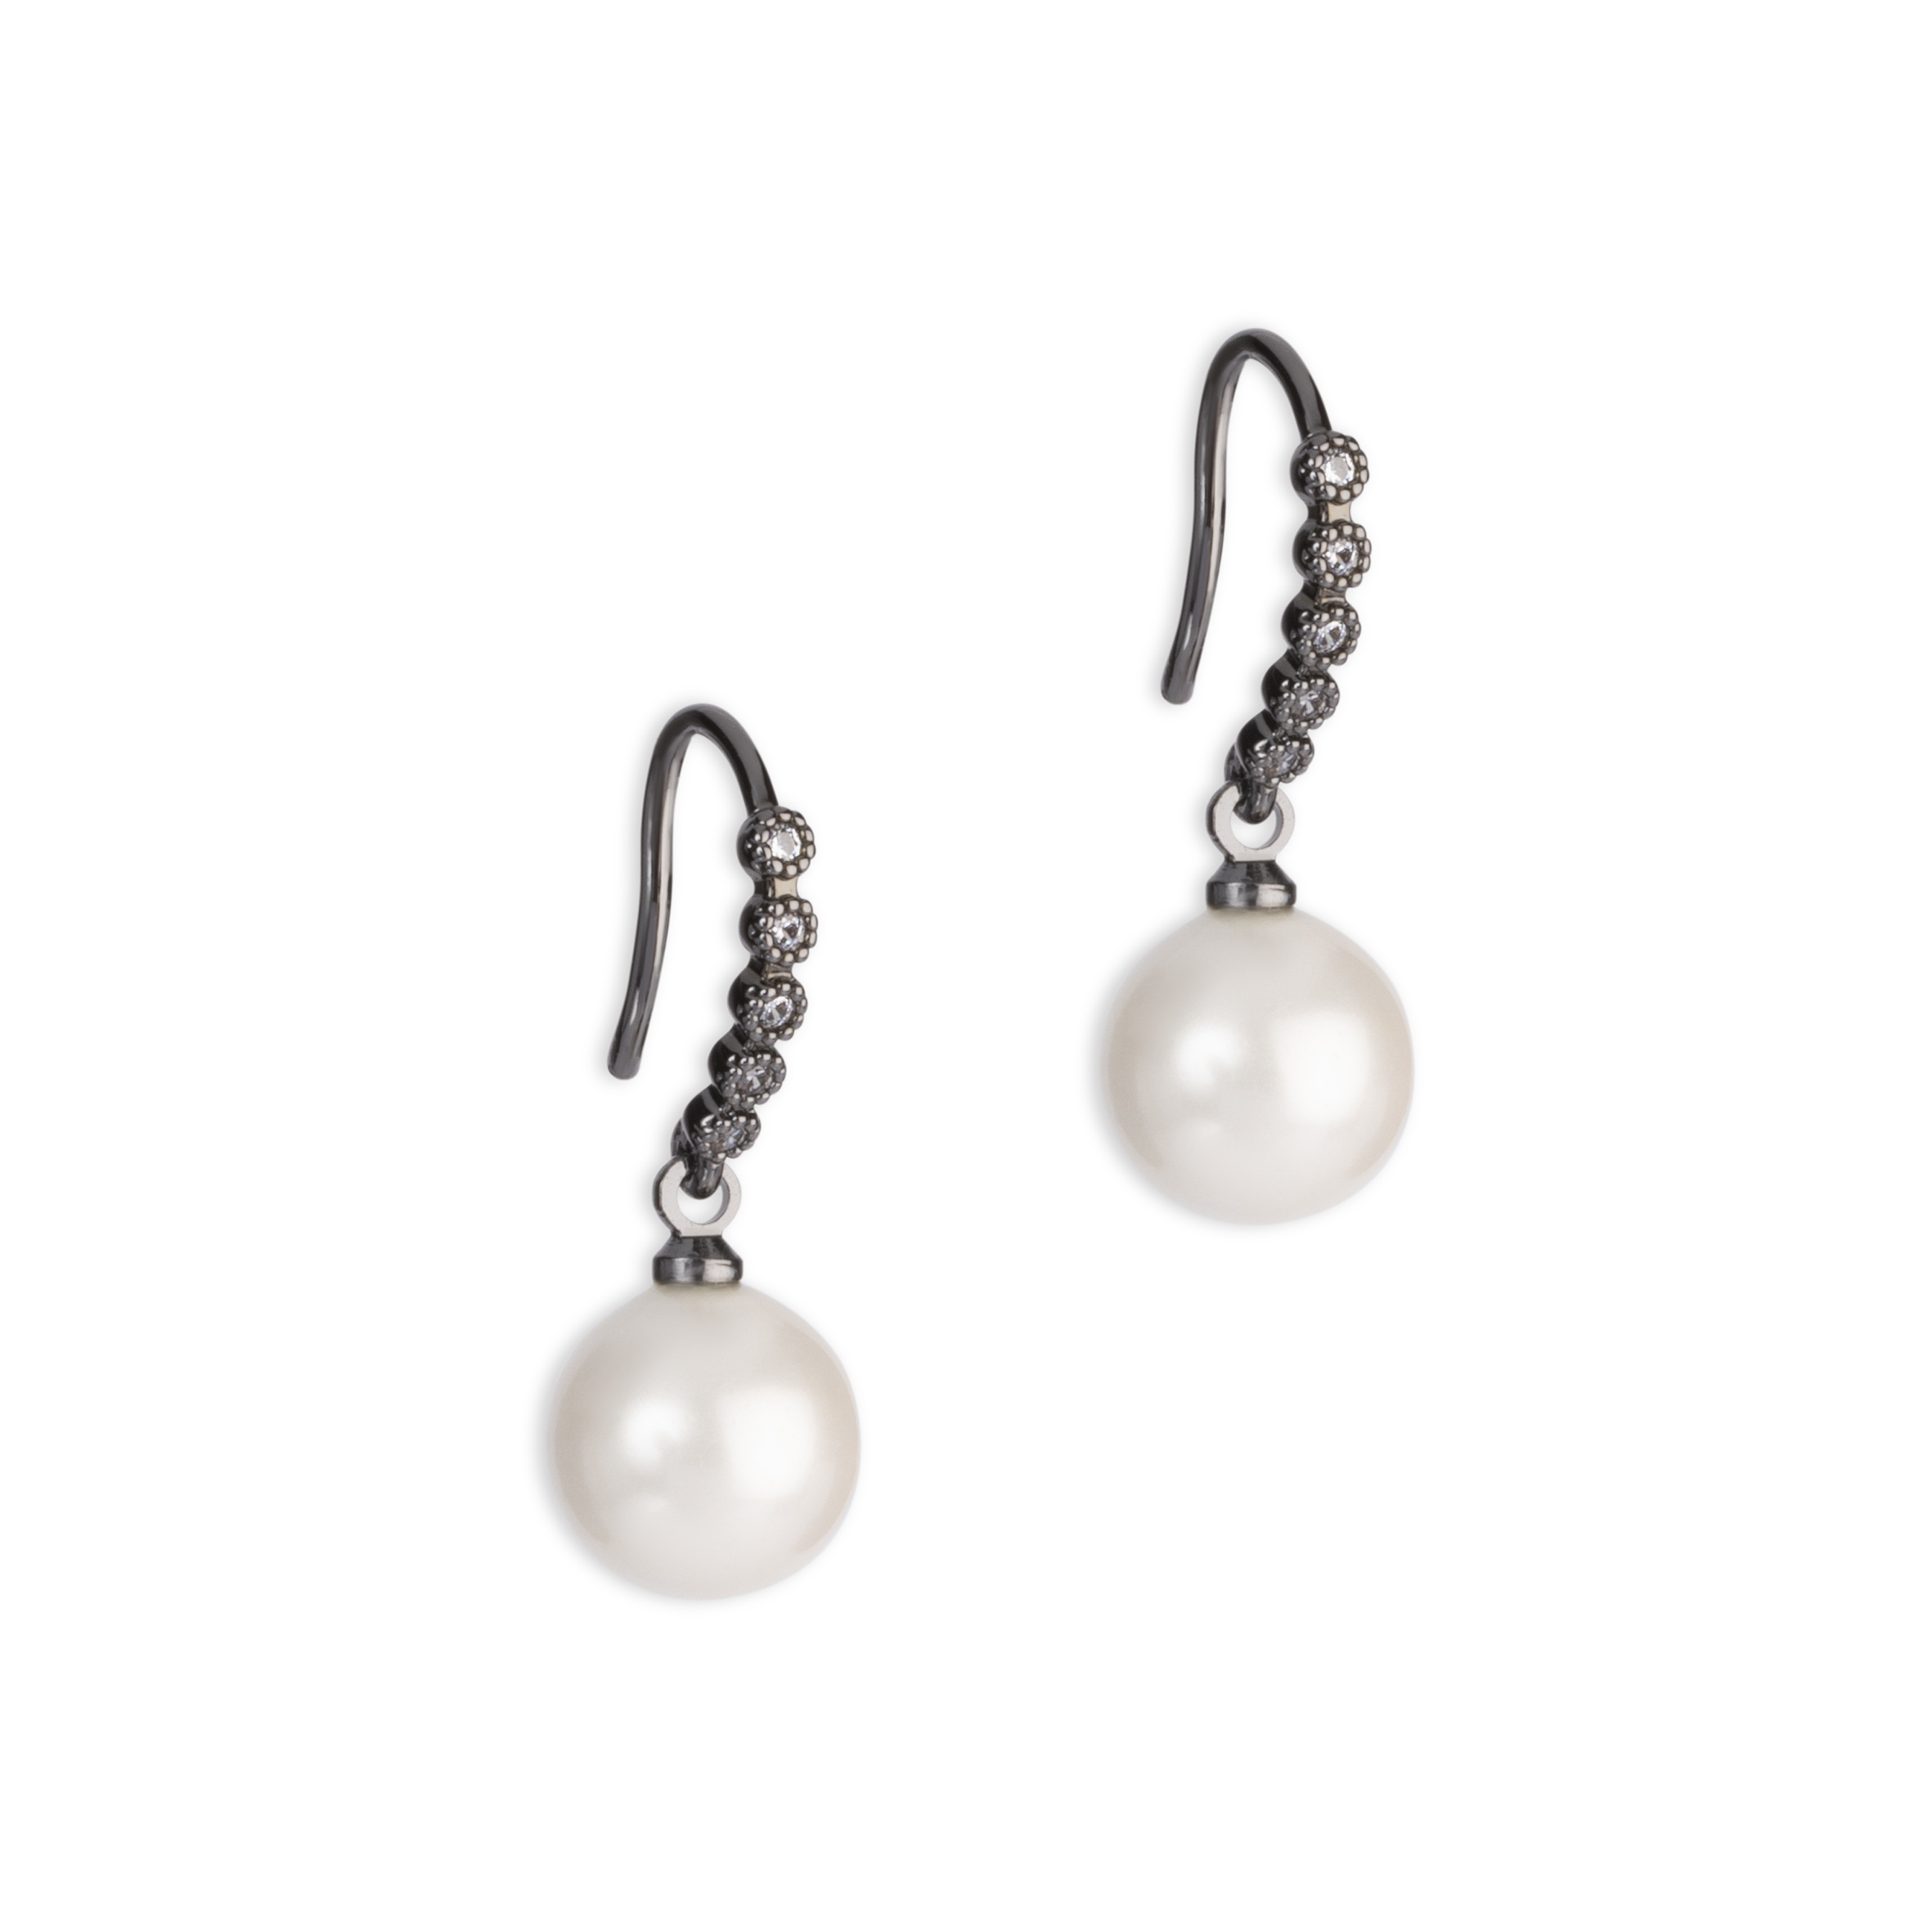 Damsmycke pfg Stockholm Pearls for Girls-Sonia Earring 96299-00